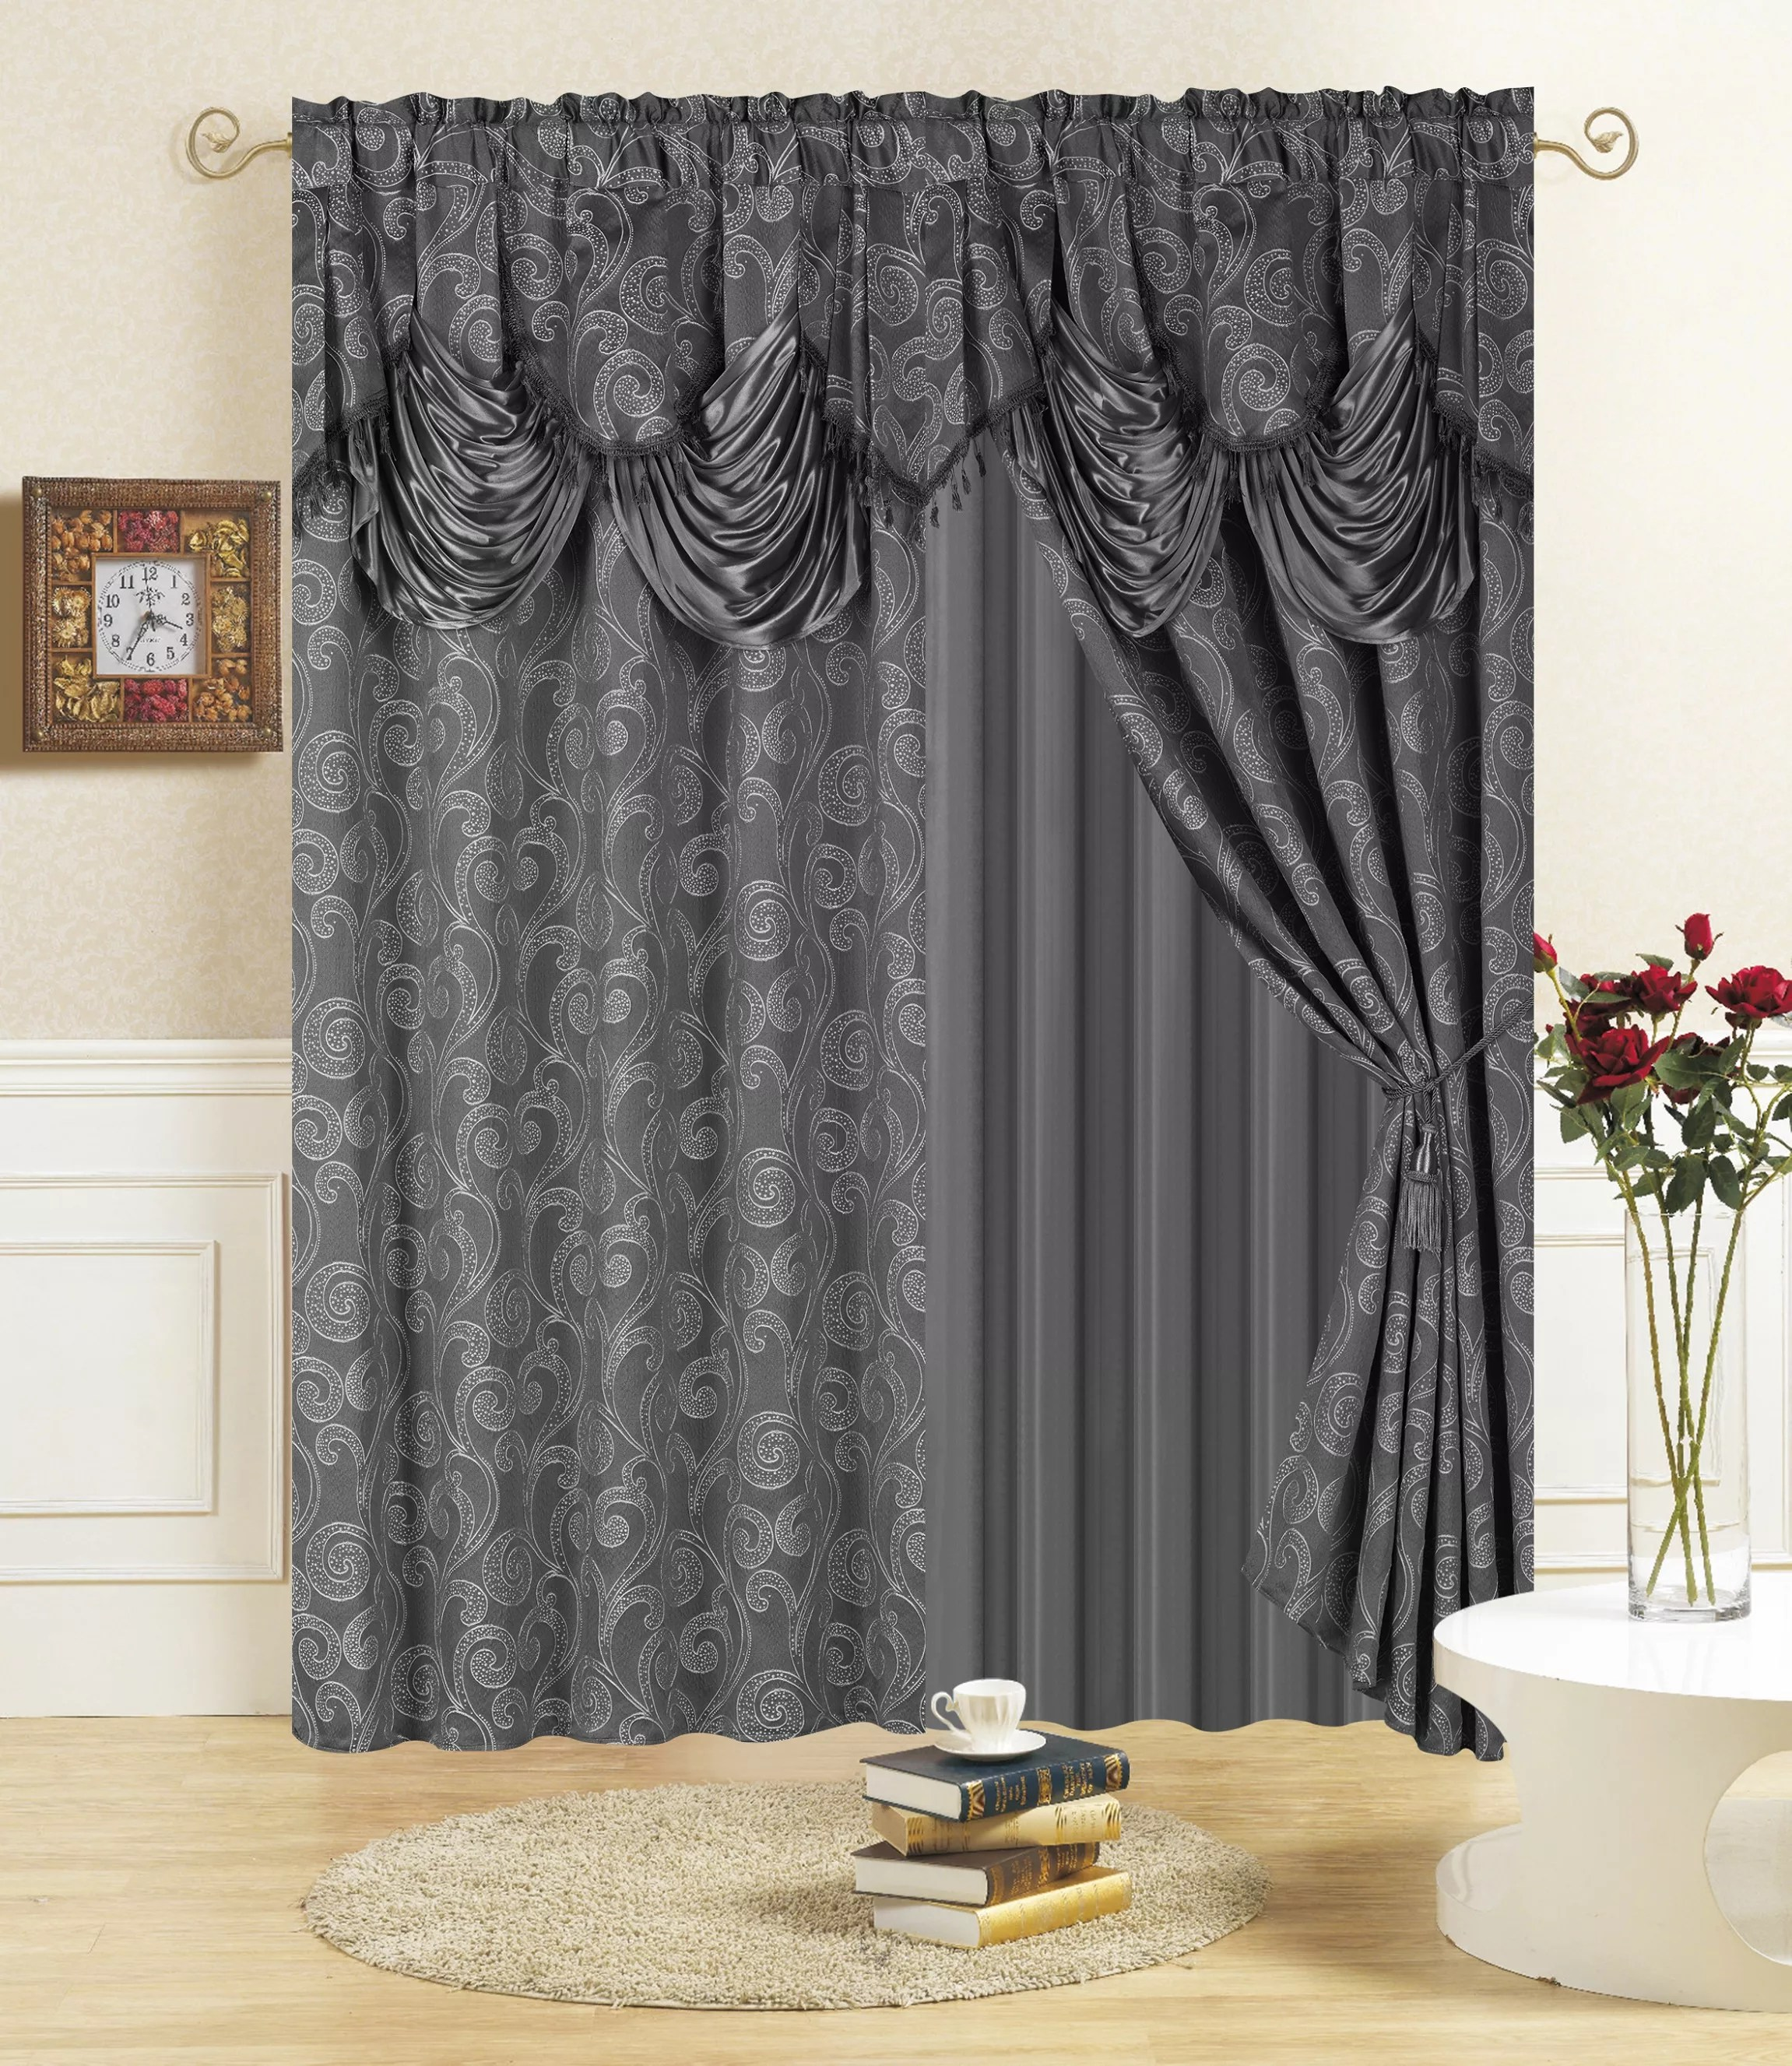 2 pcs curtain sets window for the living room window buy curtain window curtains for the living room window curtain sets product on alibaba com